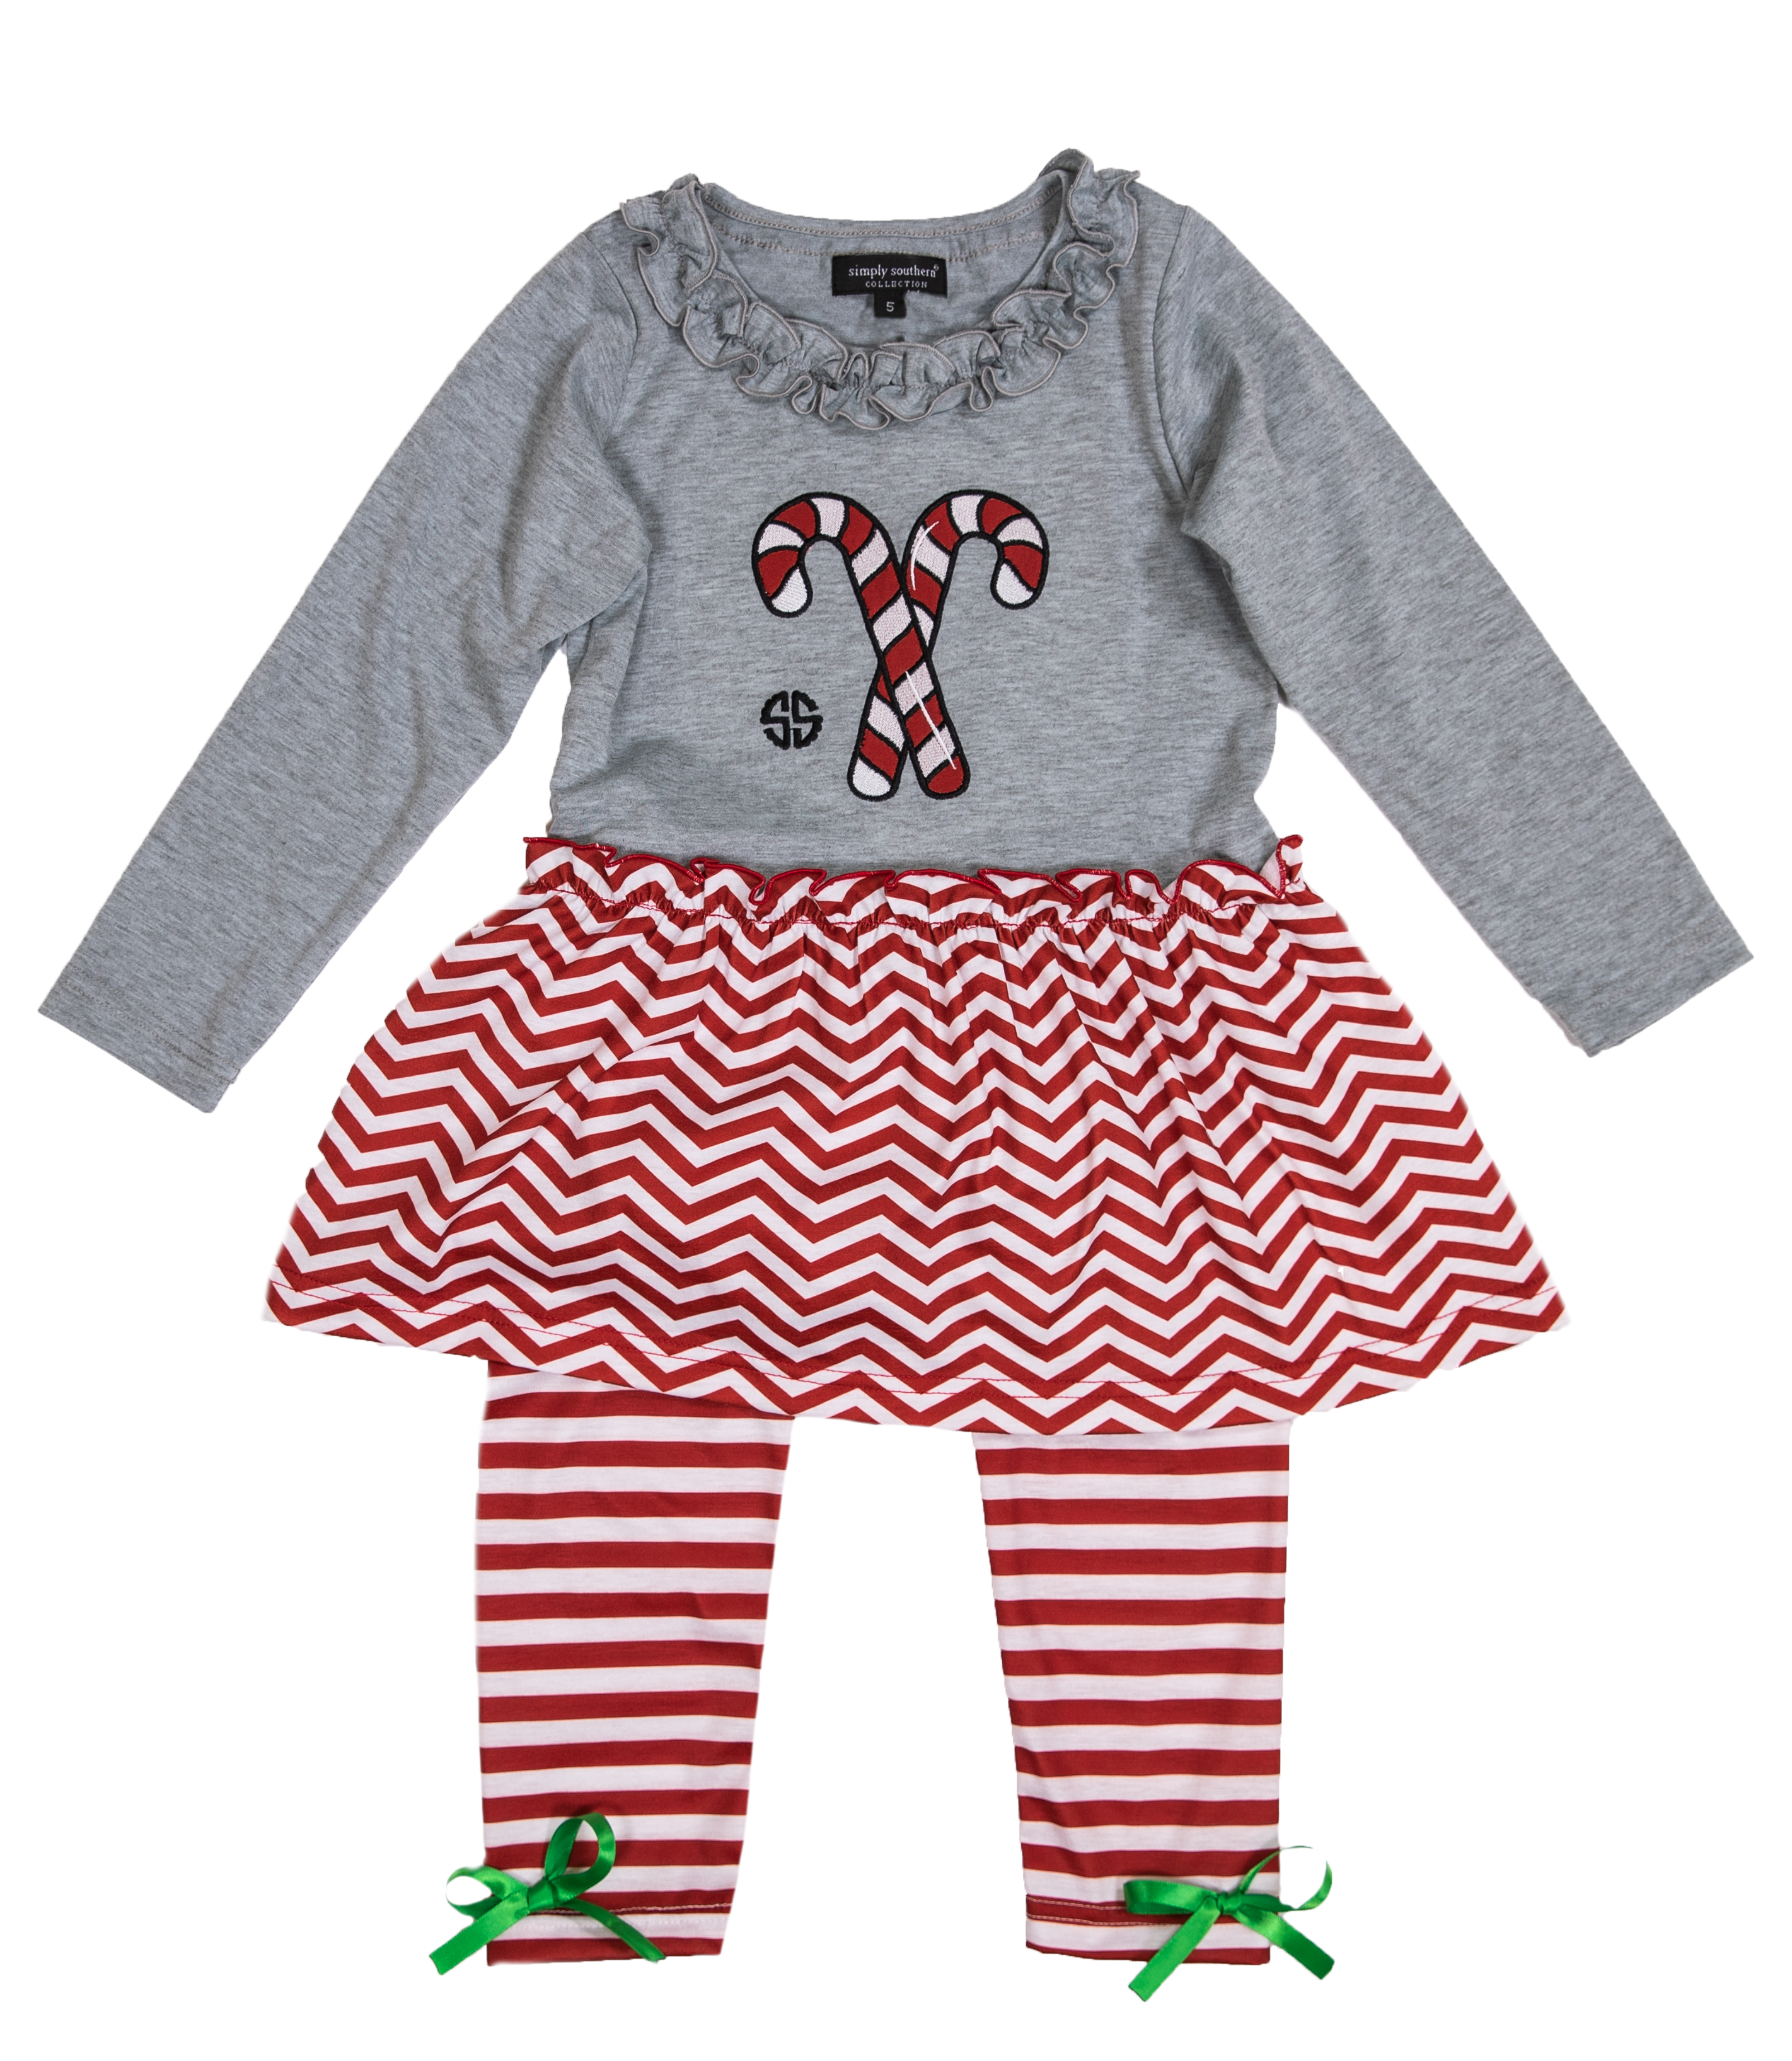 Toddler 'Candy Canes' Dress Set by Simply Southern in 2020